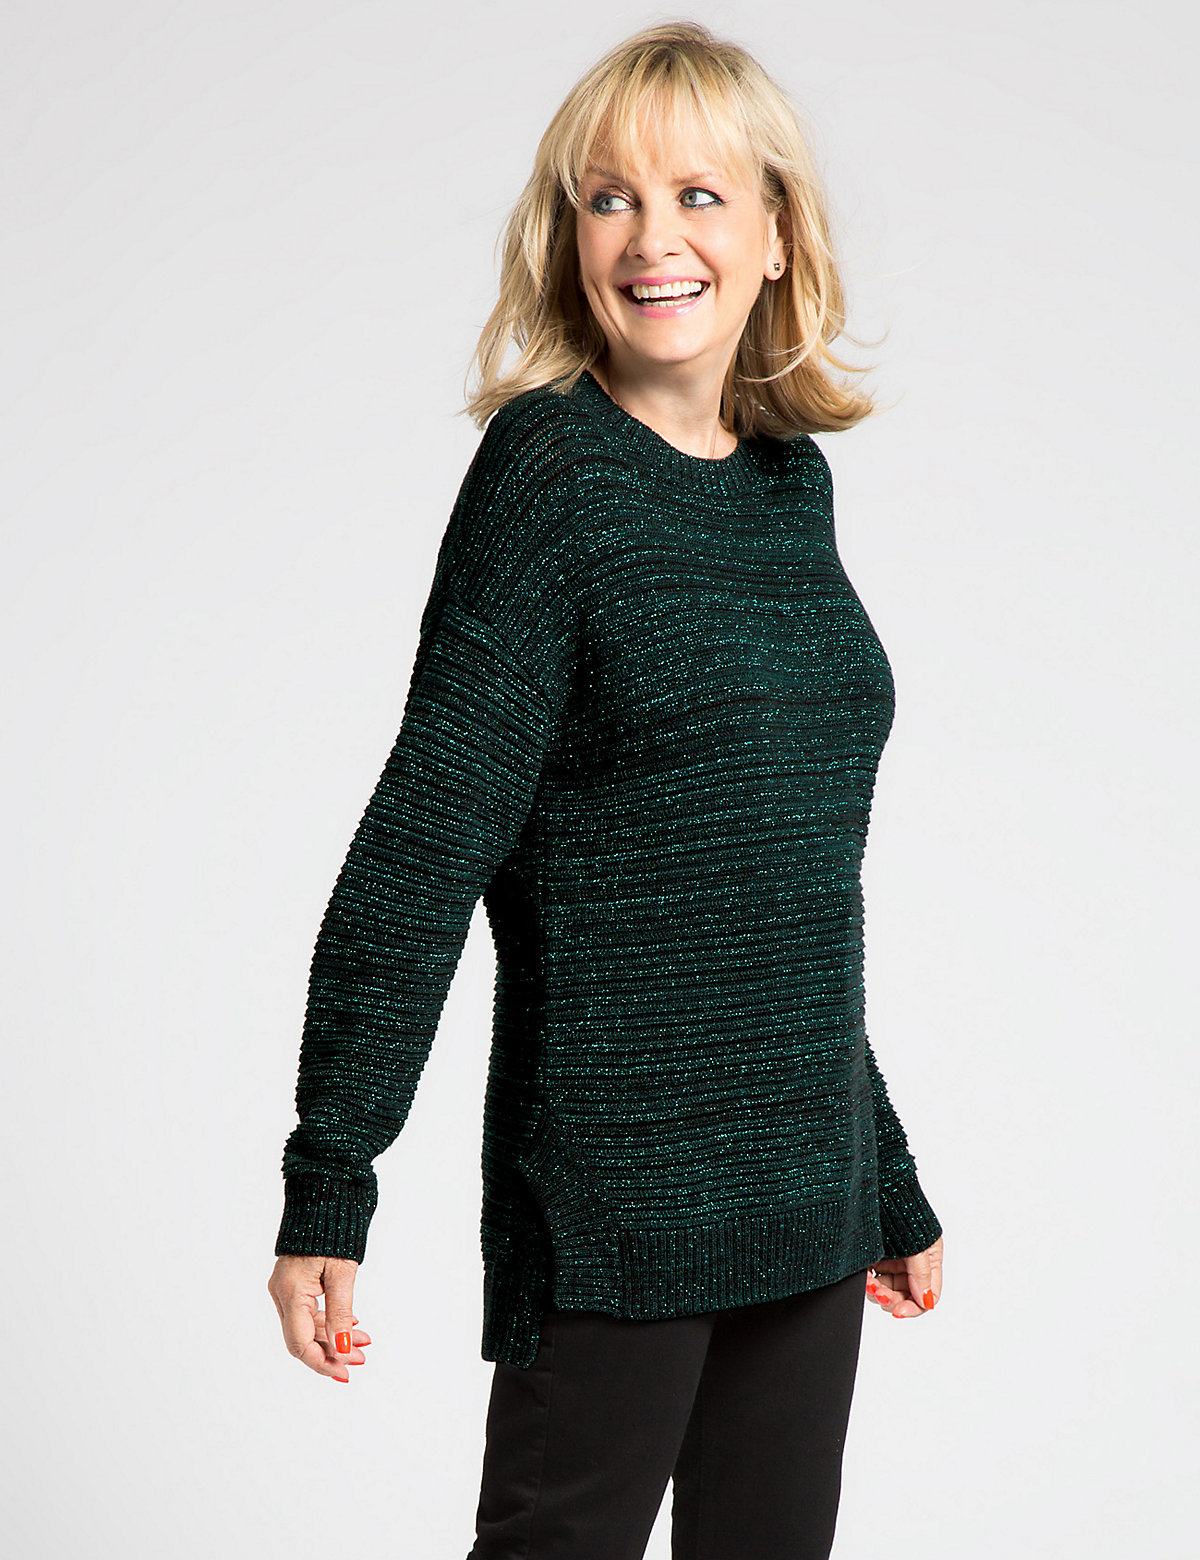 Designed by Twiggy Sparkle Ribbed Jumper